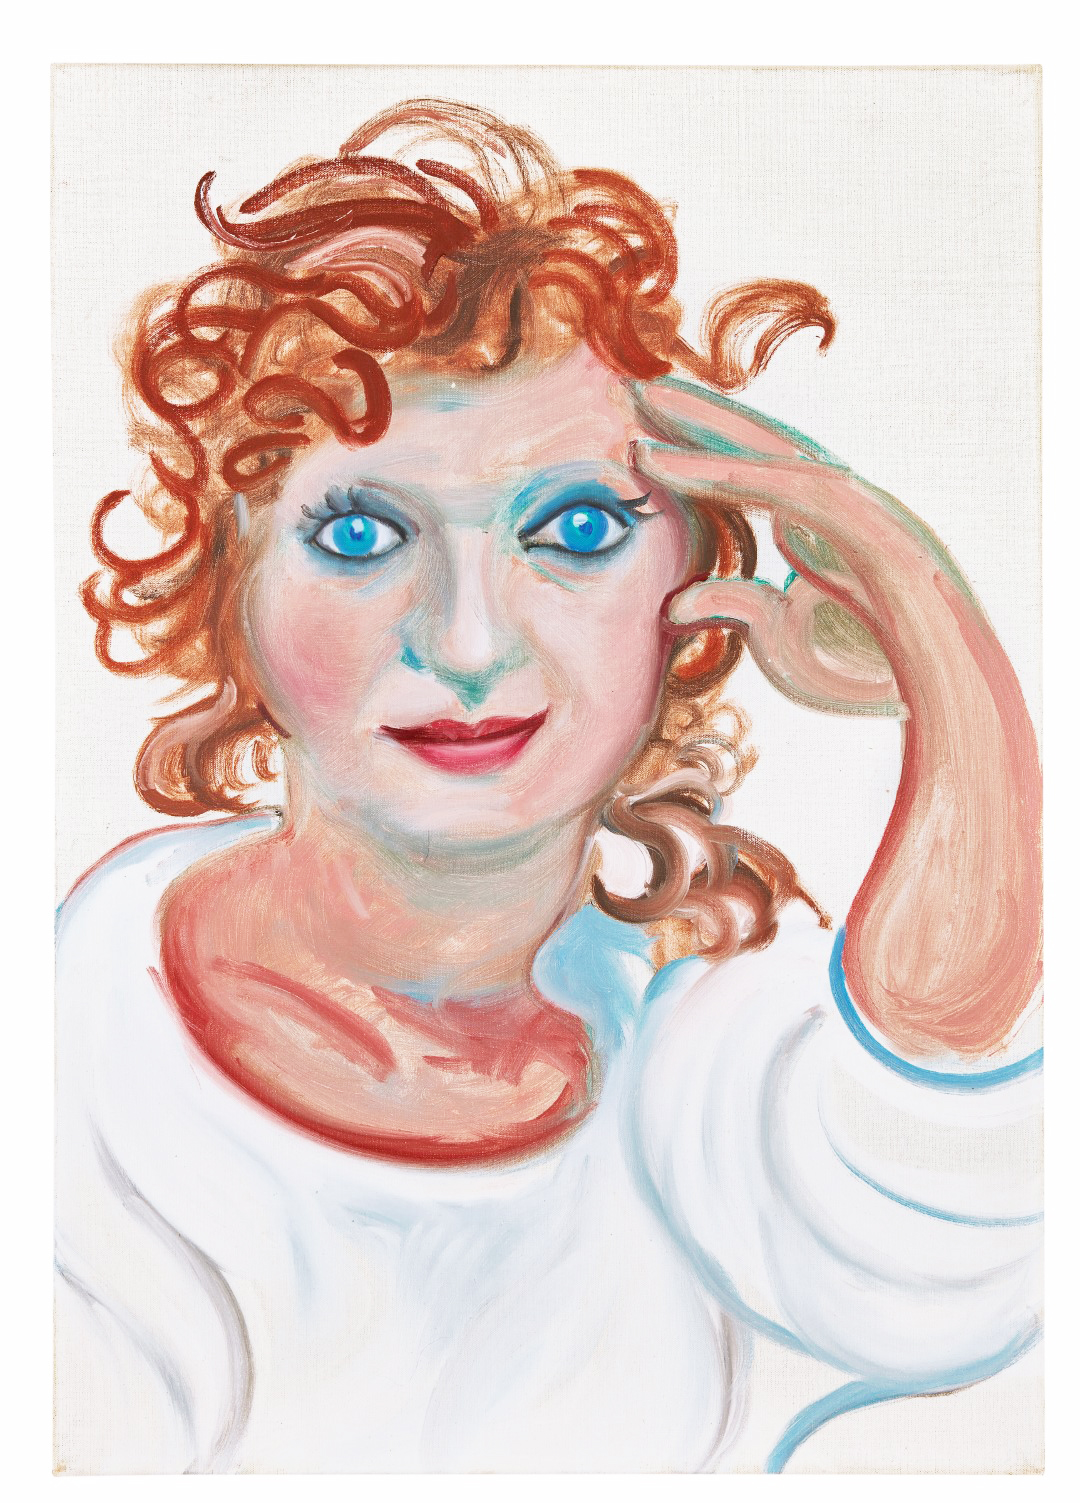 https://www.artsandcollections.com/wp-content/uploads/2019/02/David-Hockney-Celia-II-1984-est.-£600000-800000.jpg